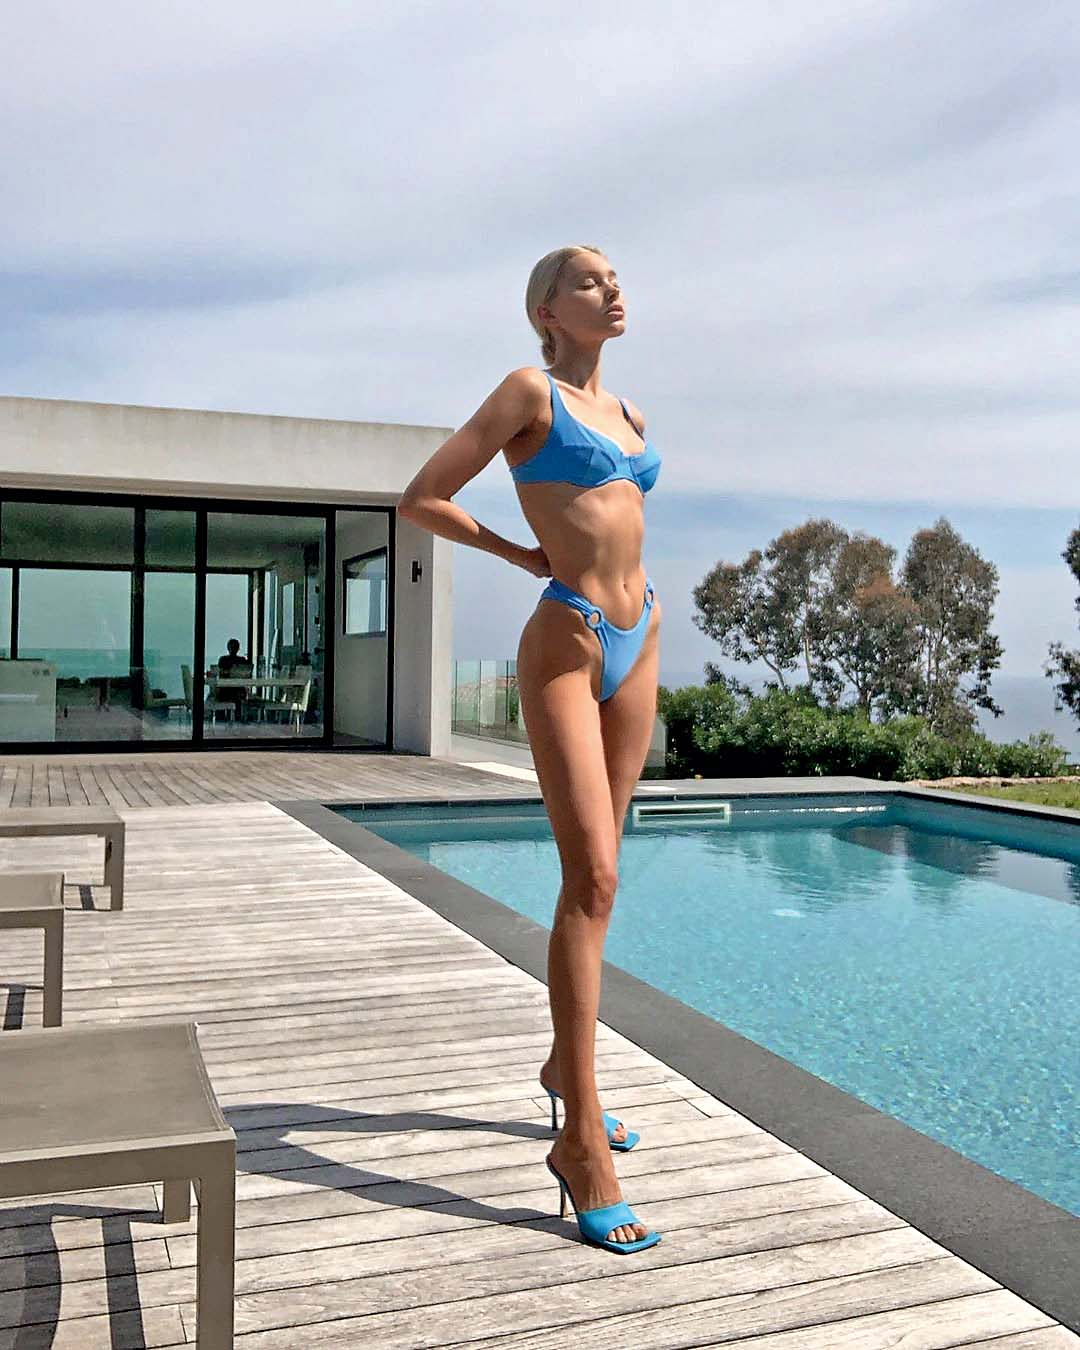 Non Exclusive: Elsa Hosk relaxes by her pool as she enjoys a French morning. The model showed off her stunning figure as she posed in a blue bikini and slipped on some high heeled shoes as she lay by her swimming pool in the Cannes sunshine.  -------  DISCLAIMER:  BEEM does not claim any Copyright or License in the attached material. Any downloading fees charged by BEEM are for BEEM's services only, and do not, nor are they intented to, convey to the user any Copyright or License in the material. By publshing this material, the user expressly agrees to indemnify and to hold BEEM harmless from any claims, demands, or causes of action arising out of or connected in any way with user's publication of the material., Image: 437465129, License: Rights-managed, Restrictions: MANDATORY CREDIT OR DOUBLE FEE WILL BE CHARGED, Model Release: no, Credit line: Profimedia, Beem